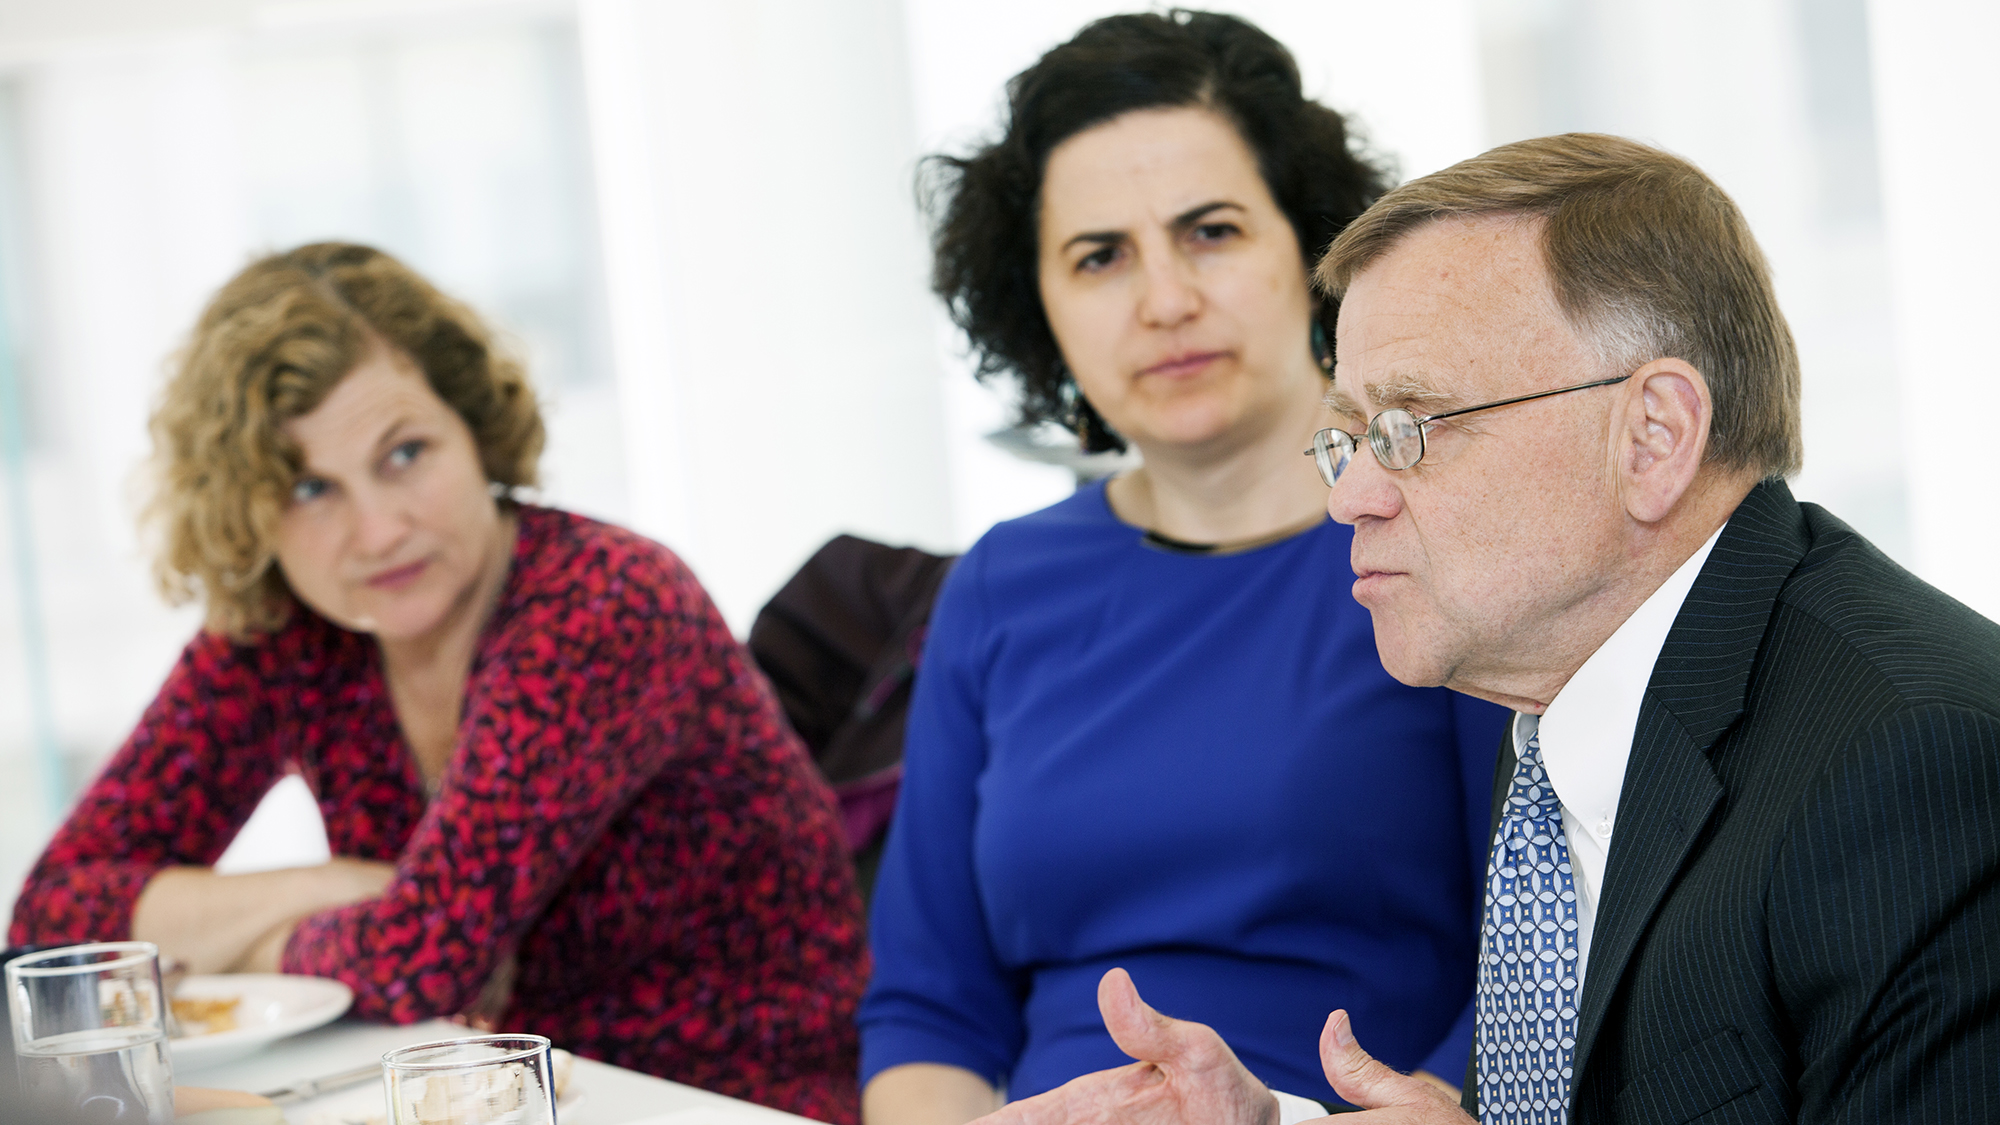 Mike Taylor, deputy commissioner of the U.S. Food and Drug Administration, meets with Susan Boyle Vavra (left), a microbiologist at the University of Chicago, and Everly Macario, who lost her 1½-year-old son to an antibiotic-resistant infection.